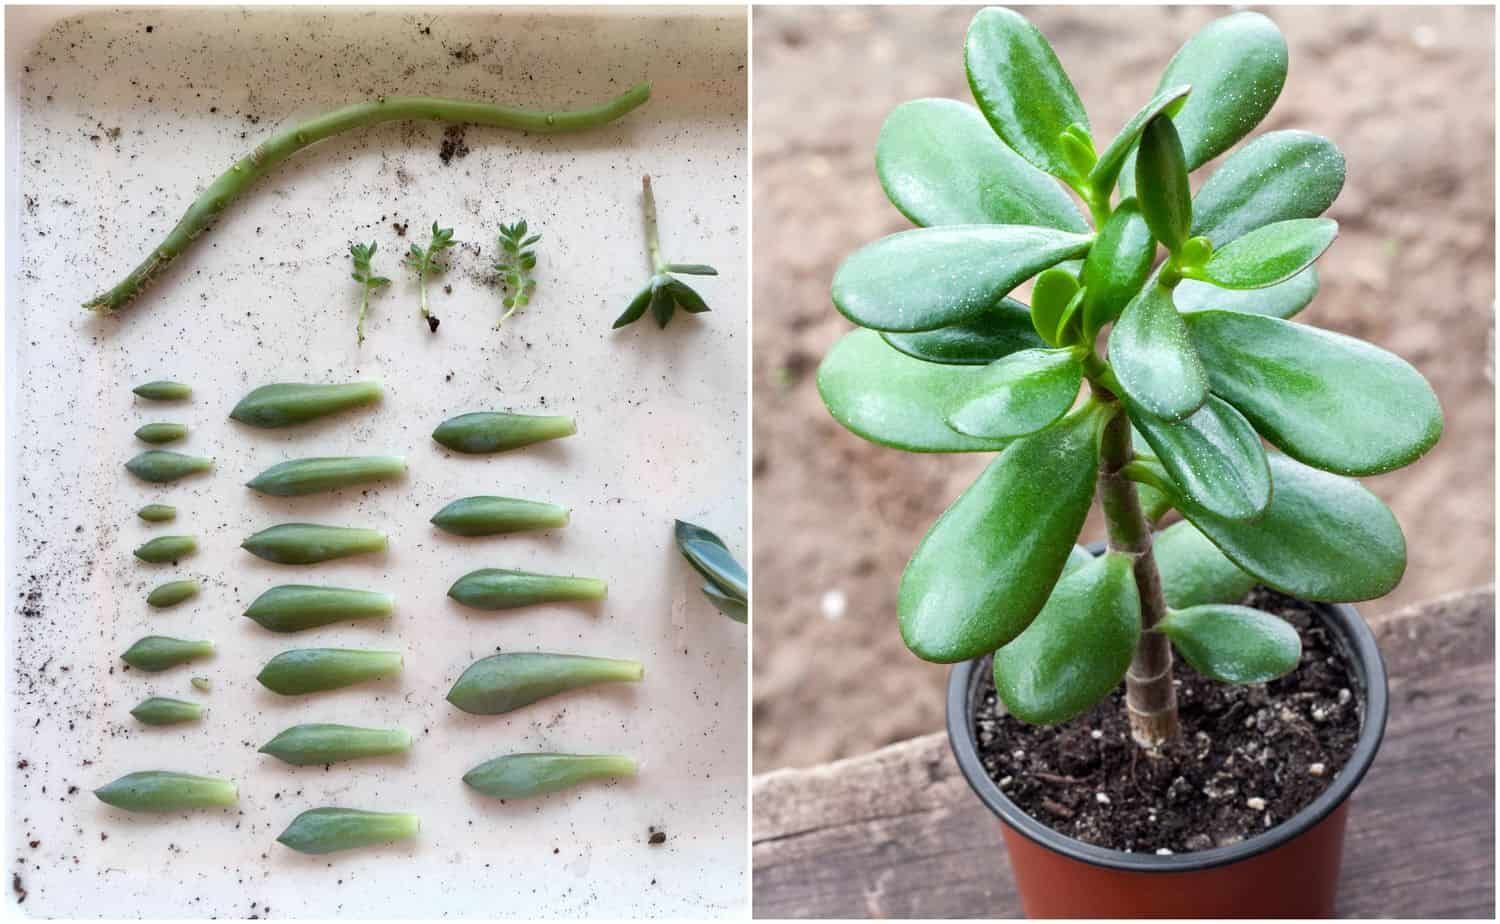 3 Easy Ways To Propagate Succulents From Leaf Stem Or Branch Cuttings Propagate Succulents From Leaves Propagating Succulents Succulents